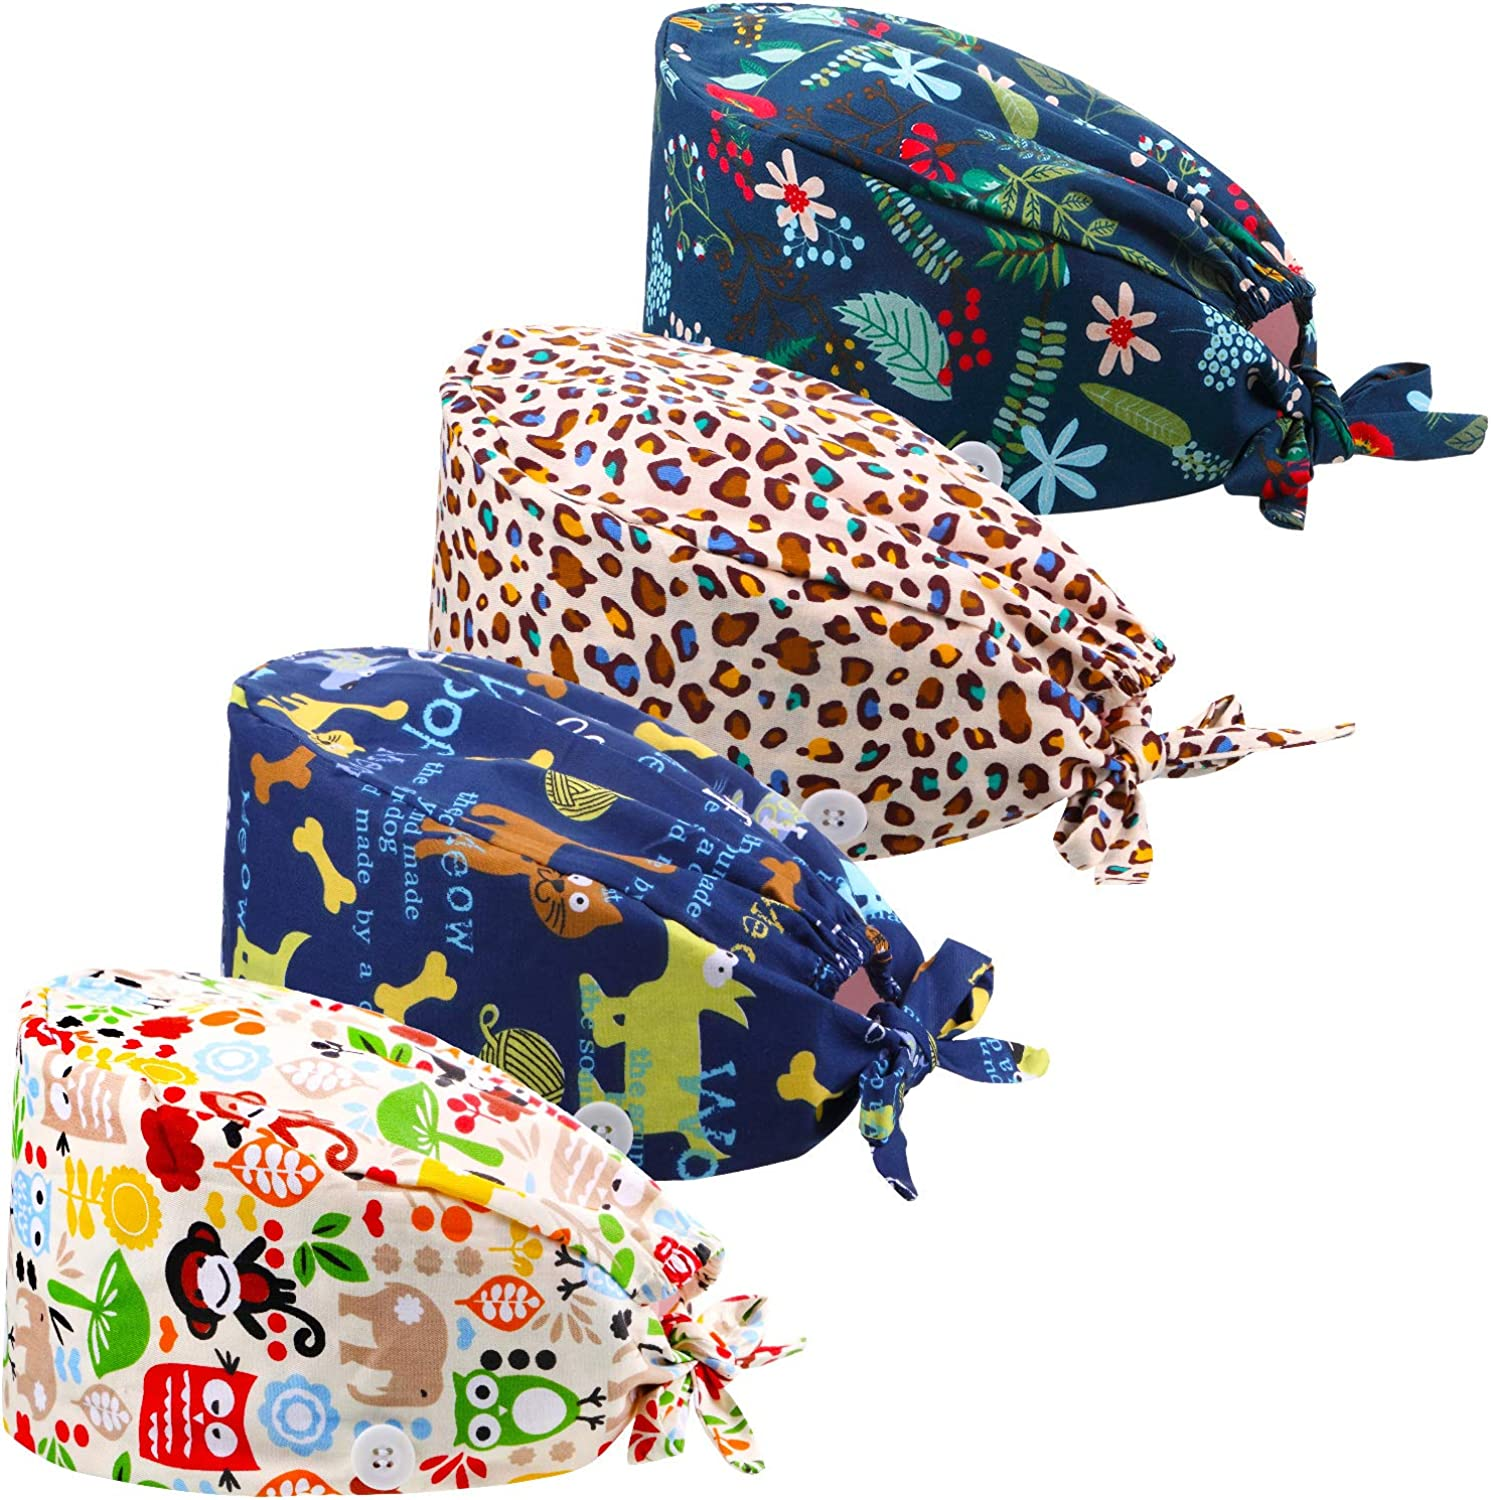 4 Pieces Bouffant Hats Working Cap with Button Sweatband, Adjustable Tie Back Floral Animal Printed Unisex Caps for Women Men: Clothing